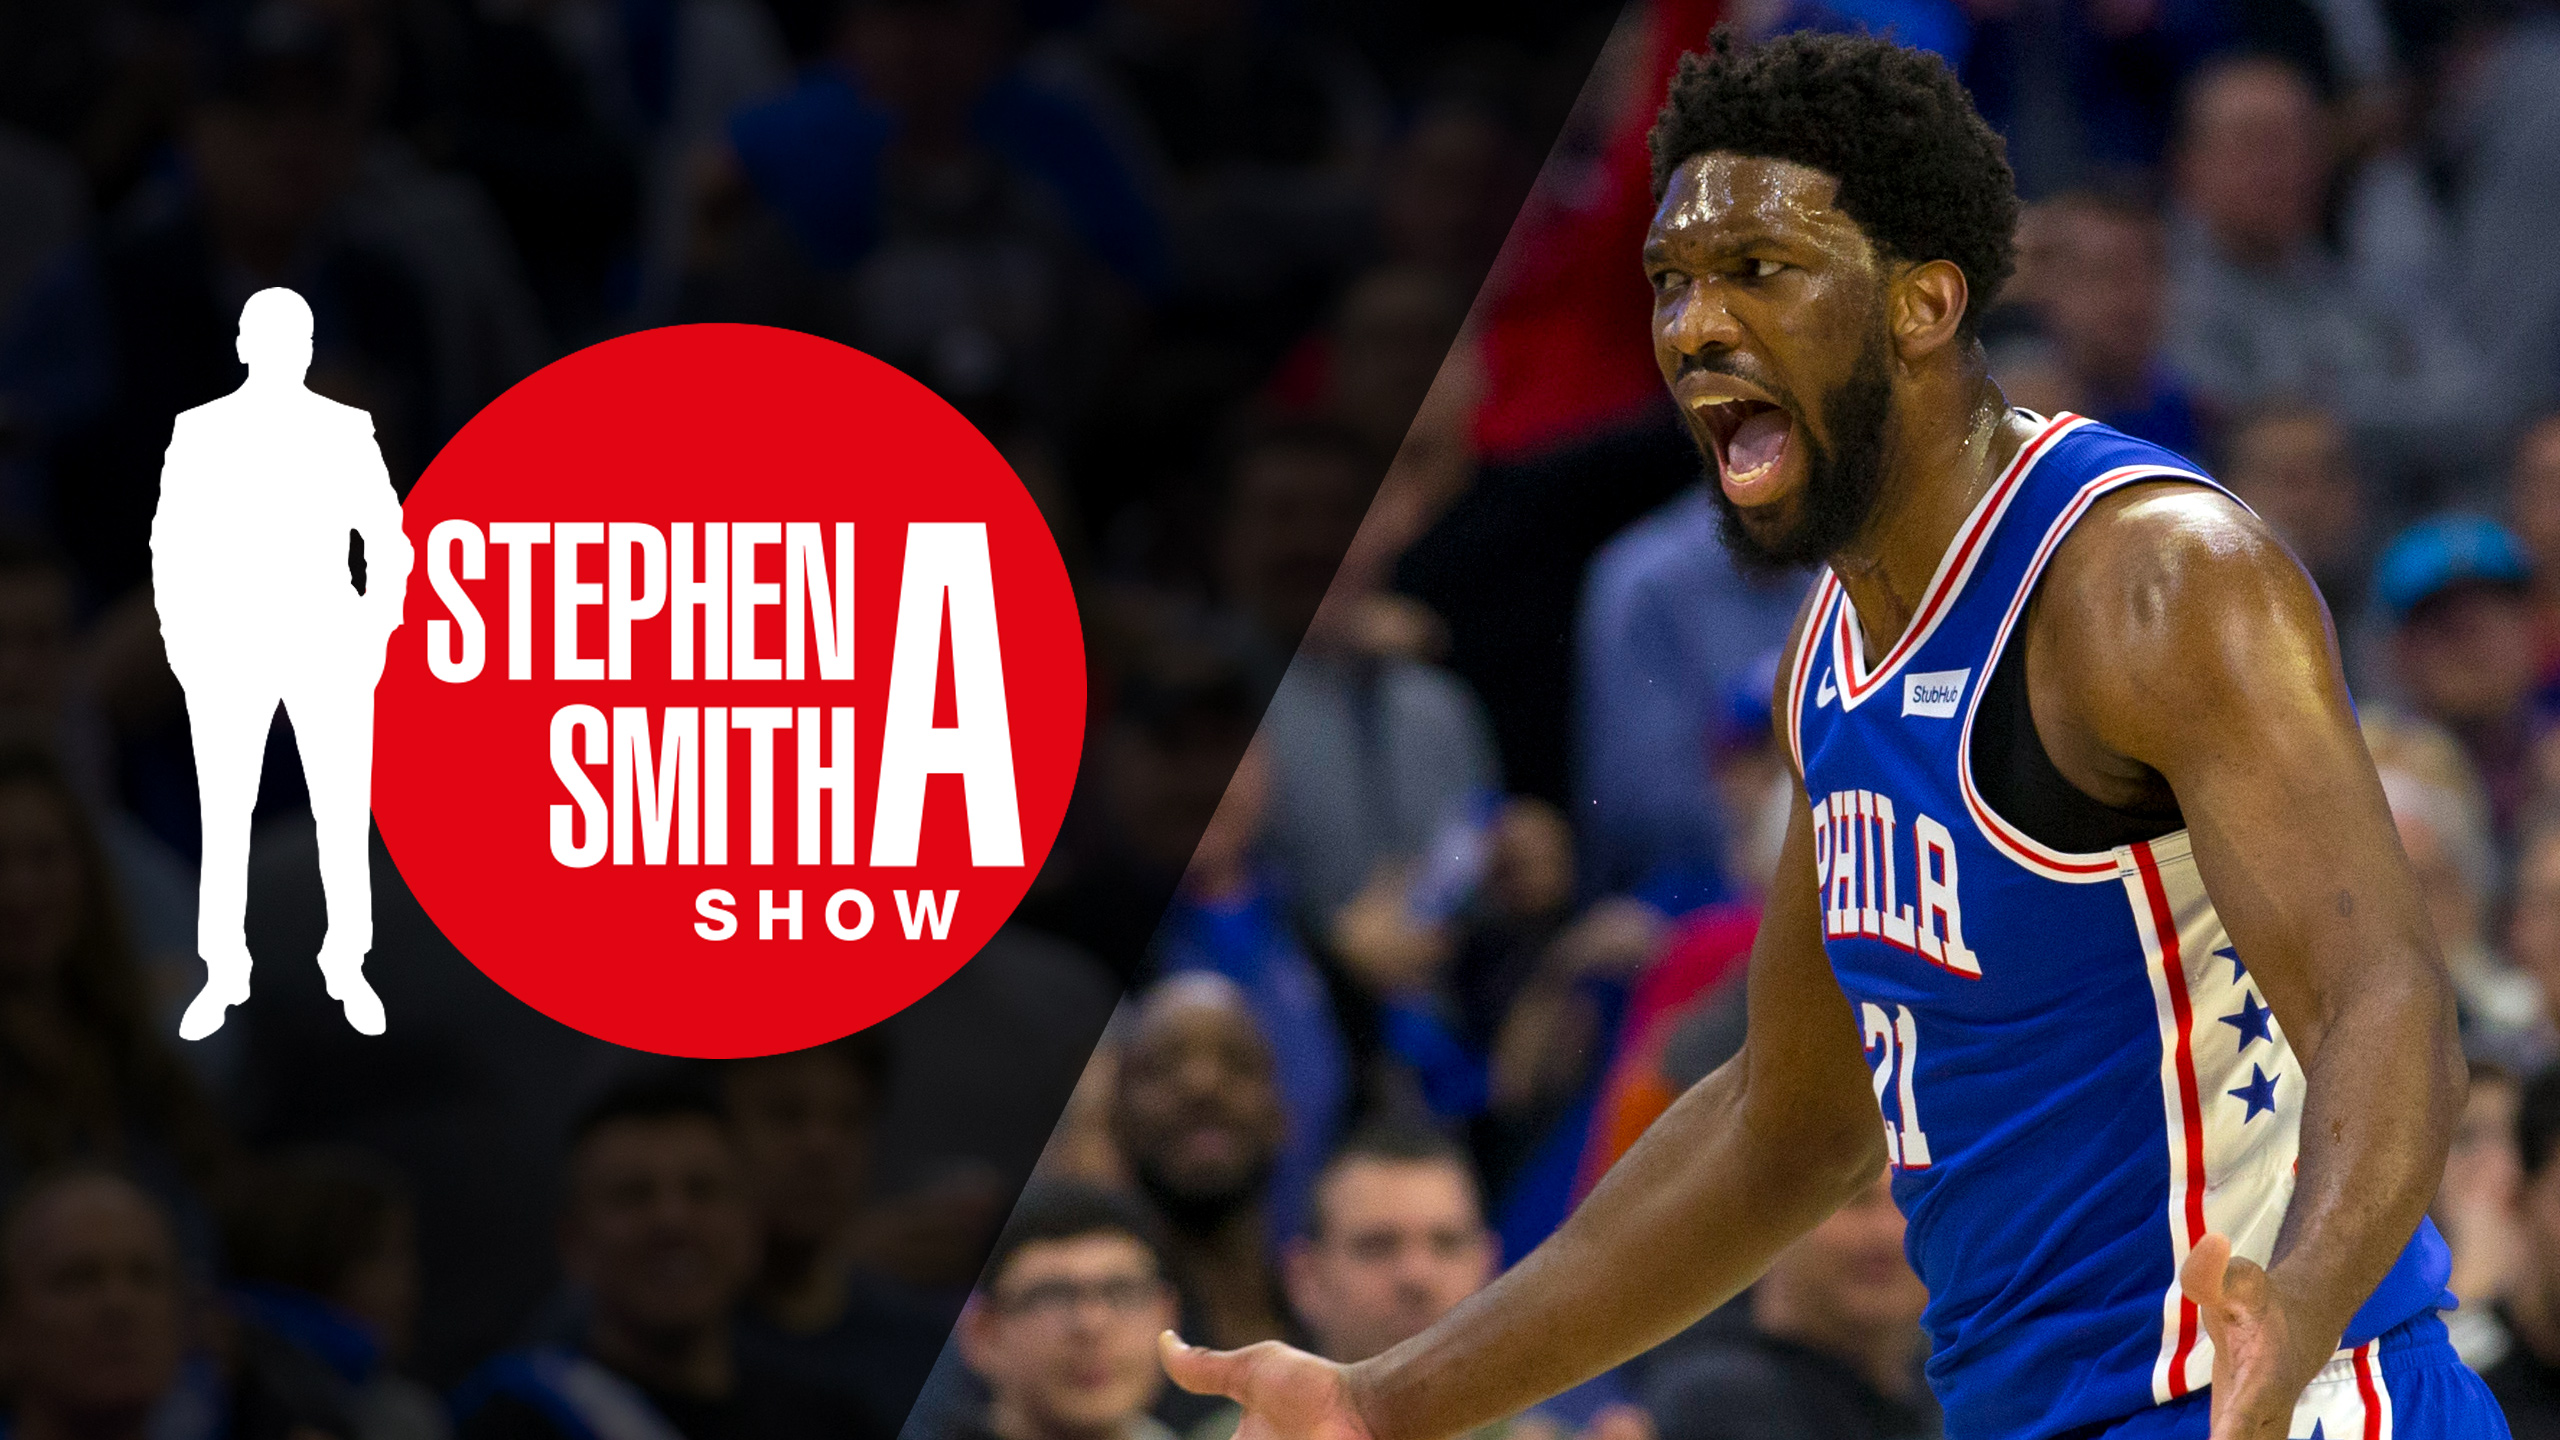 The Stephen A. Smith Show Presented by Progressive